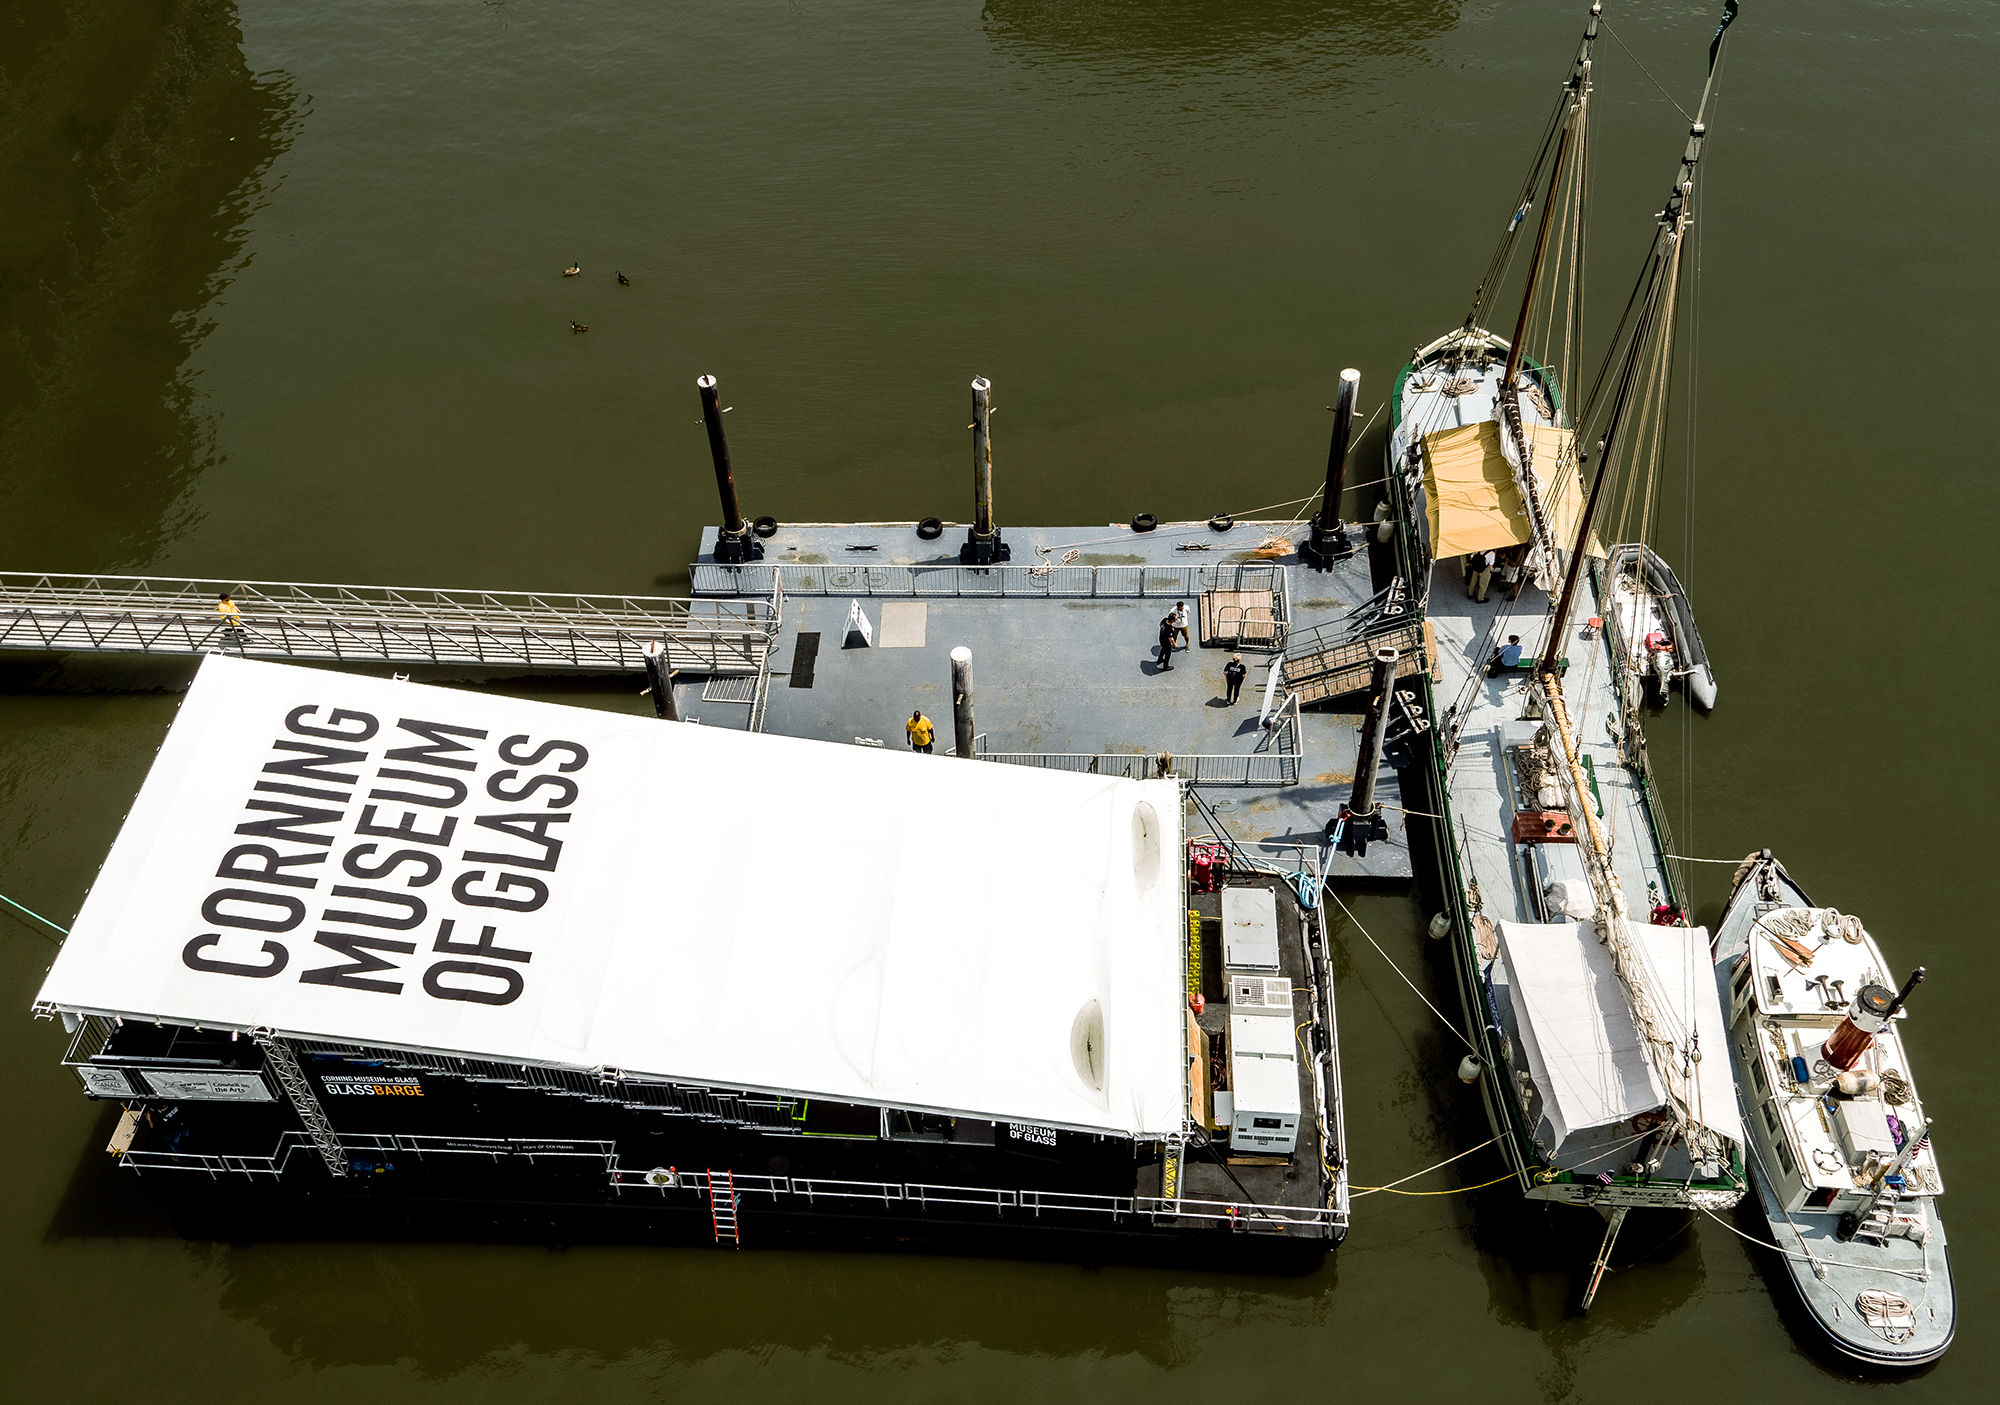 Aerial view of GlassBarge, the Lois McClure, and the C.L. Churchill docked on the Hudson River.